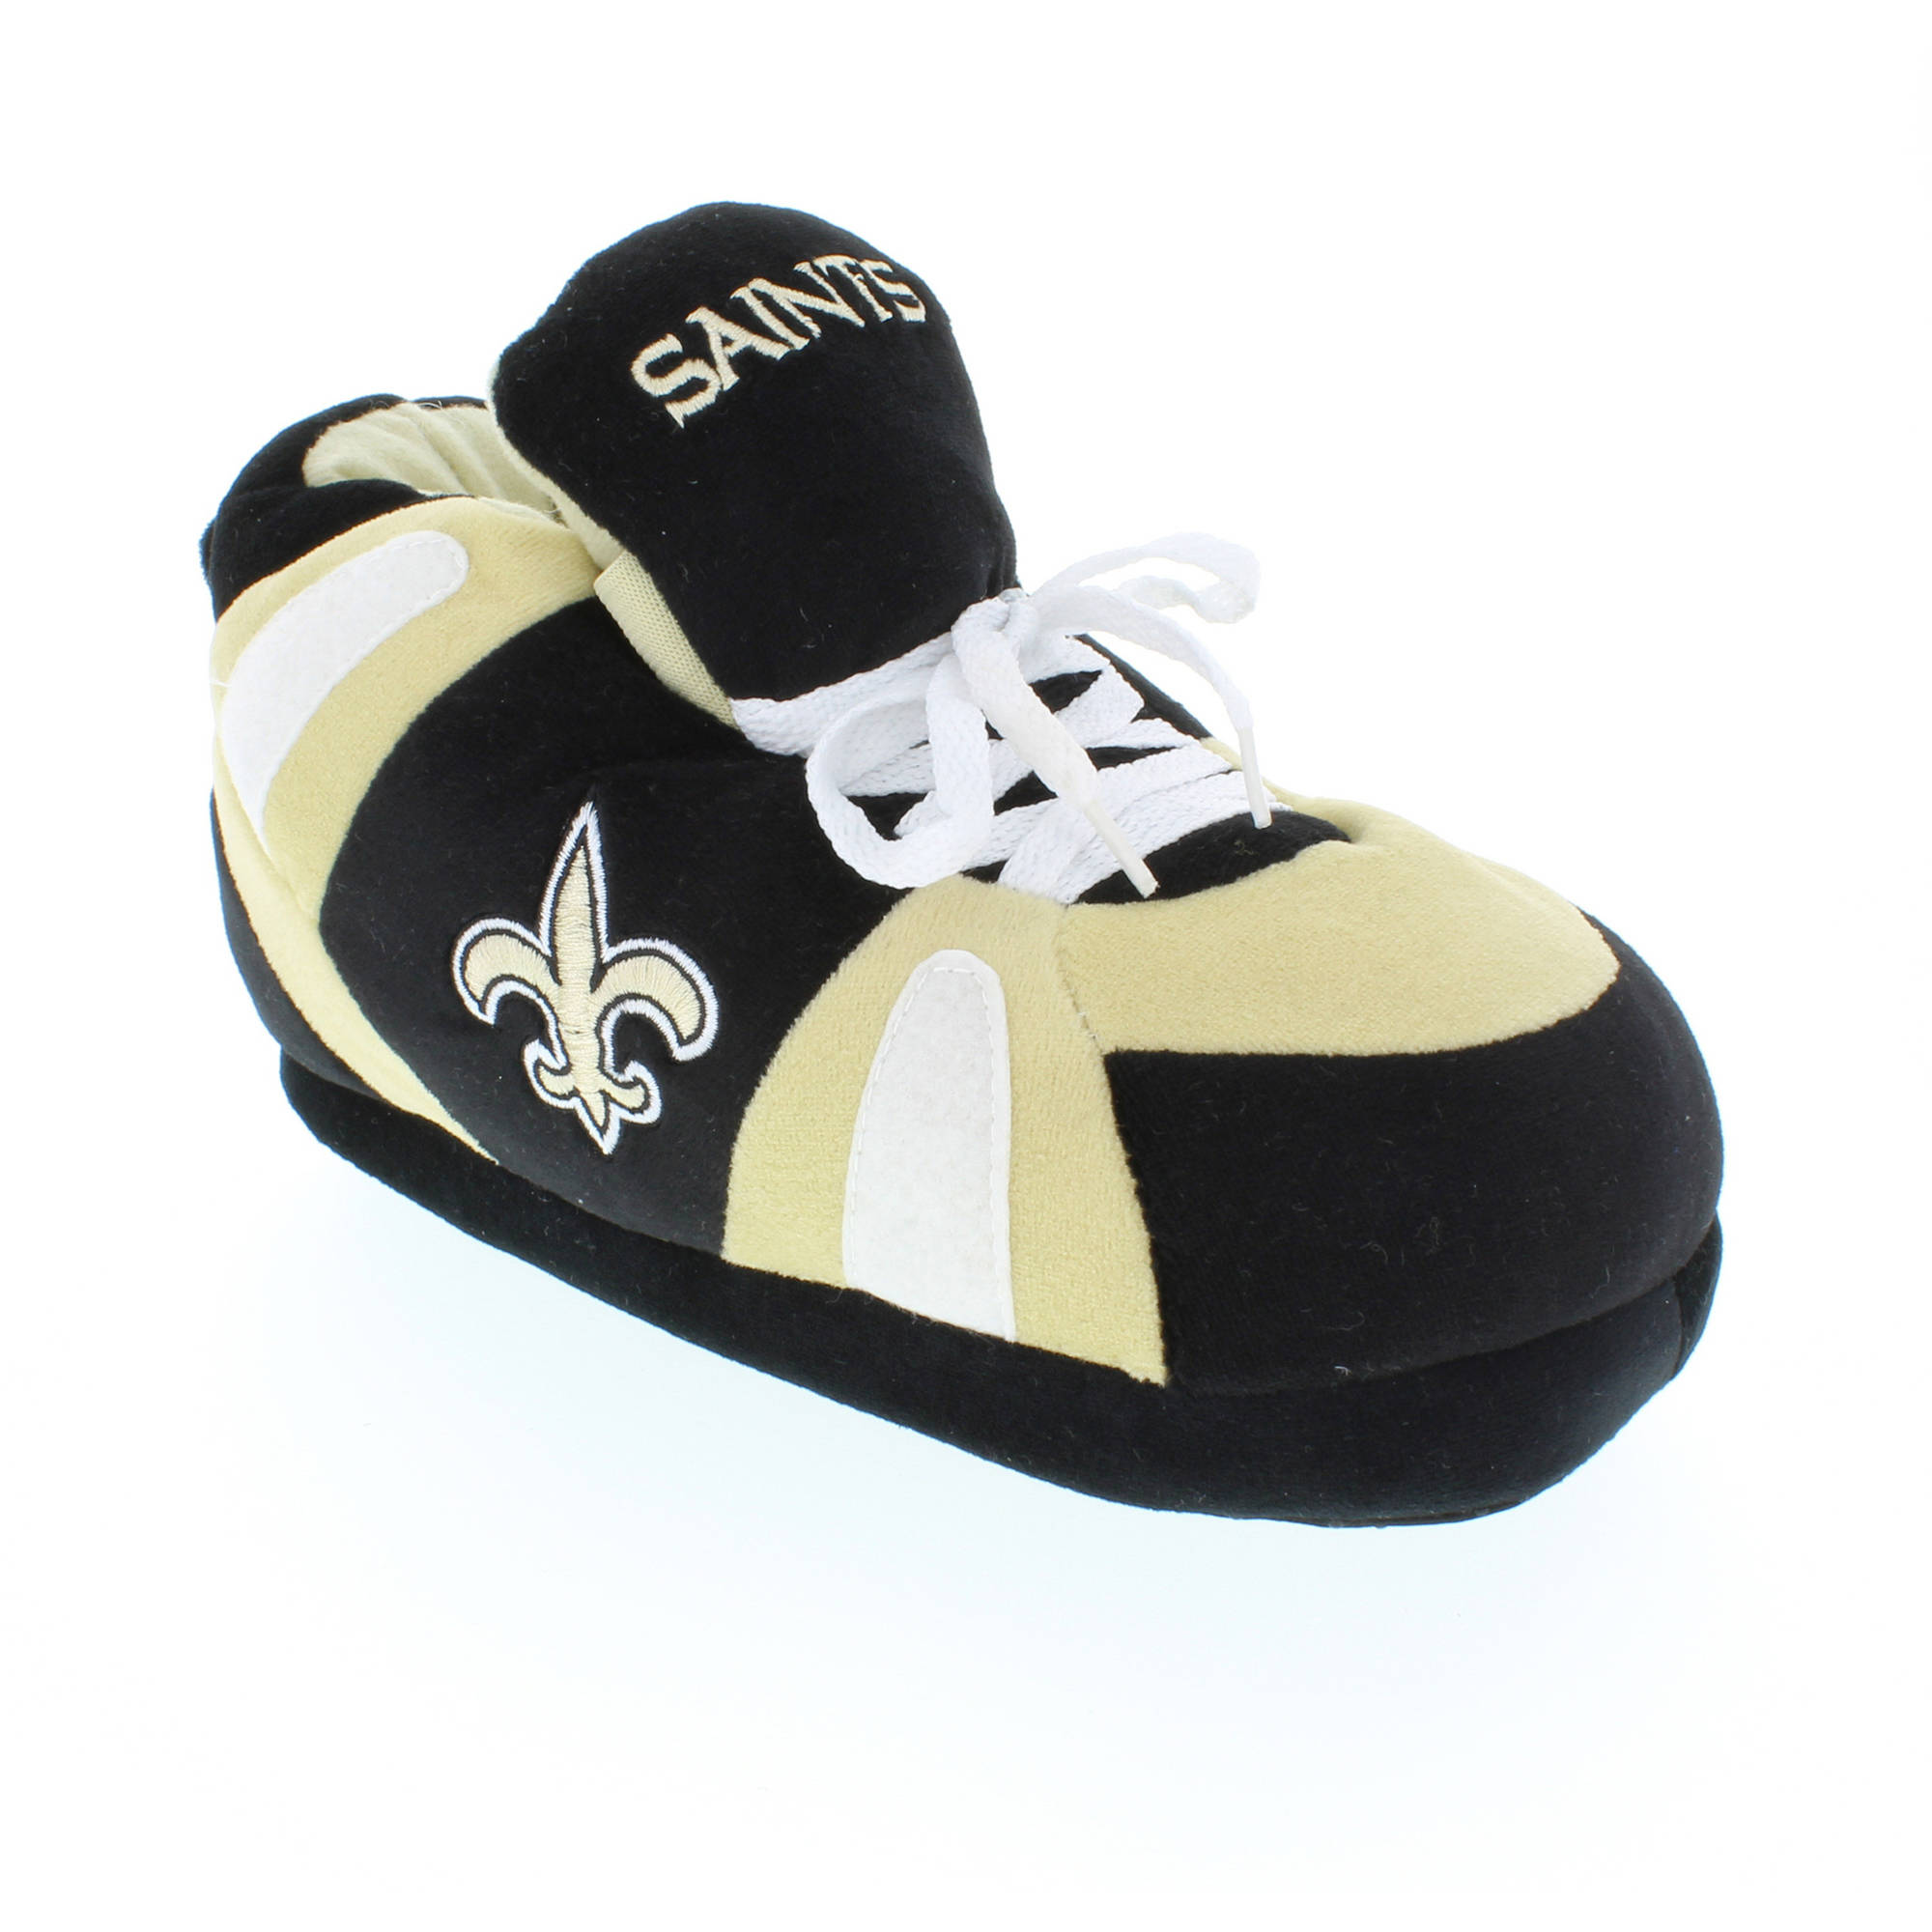 Men's New Orleans Saints ... Slippers